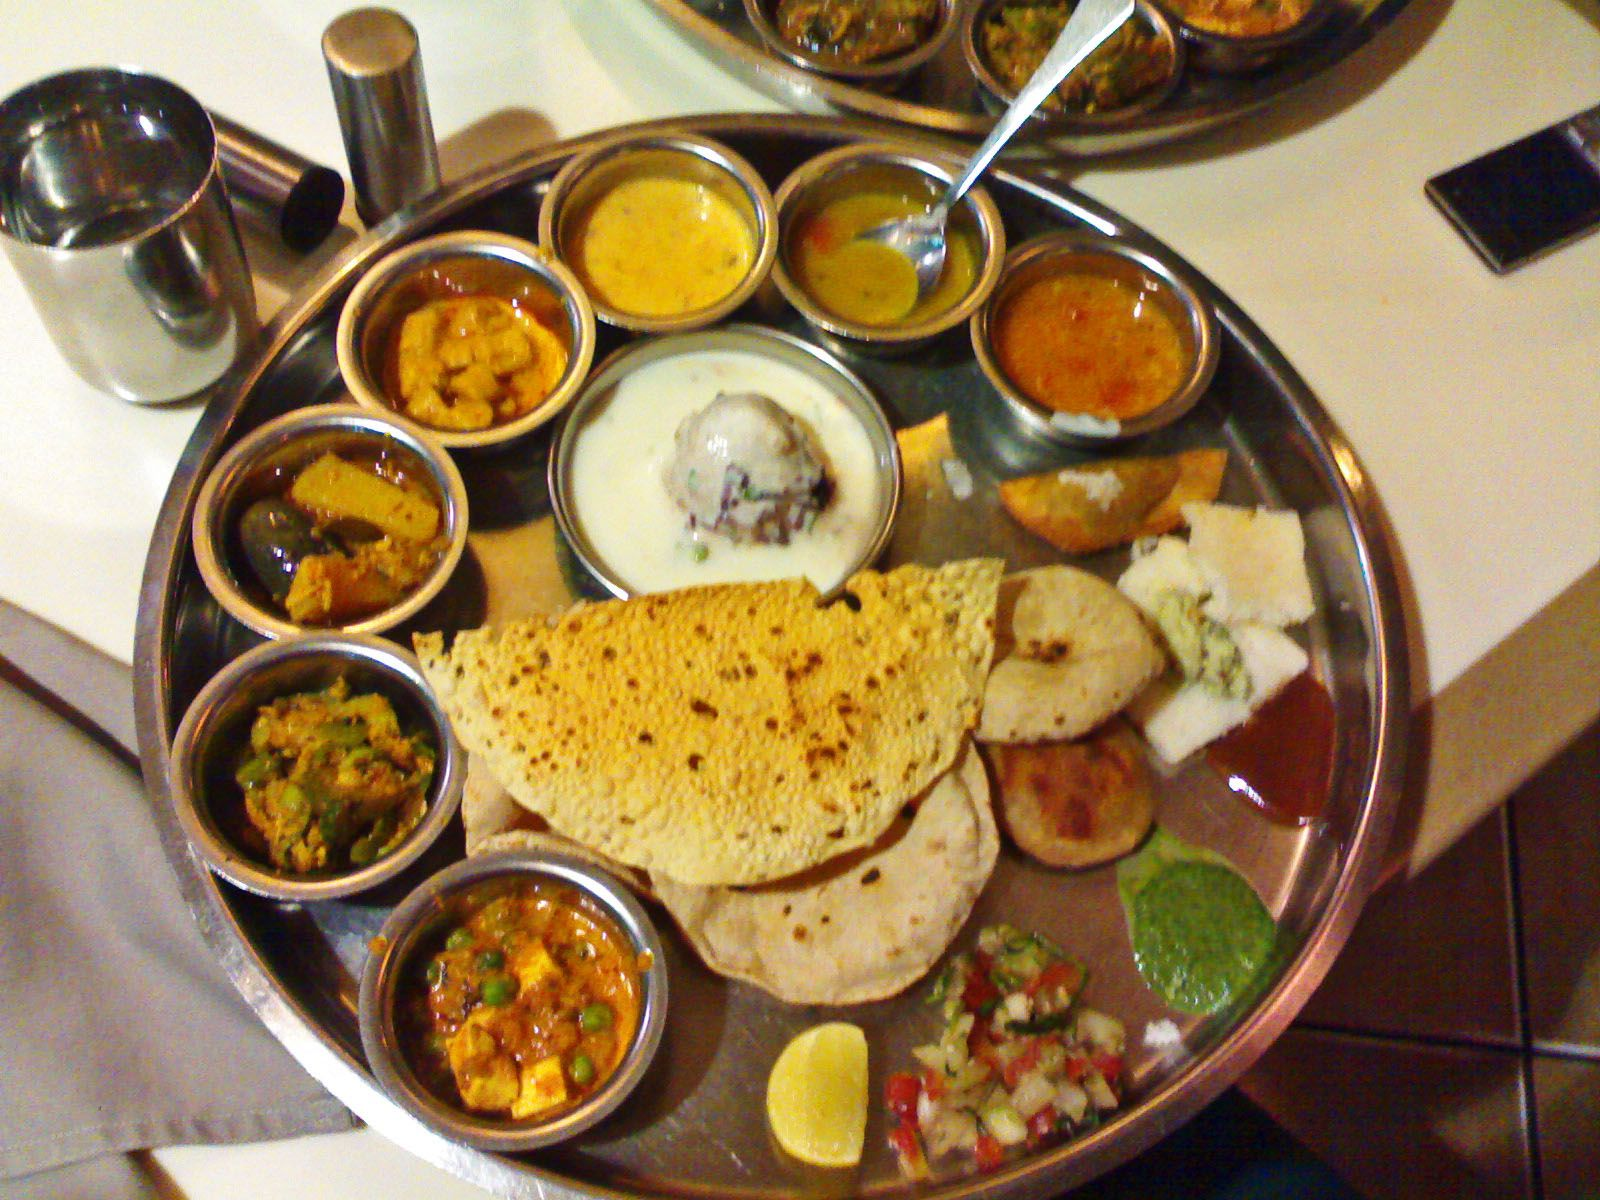 Indian Thali typical Indian vegetarian meal (With images